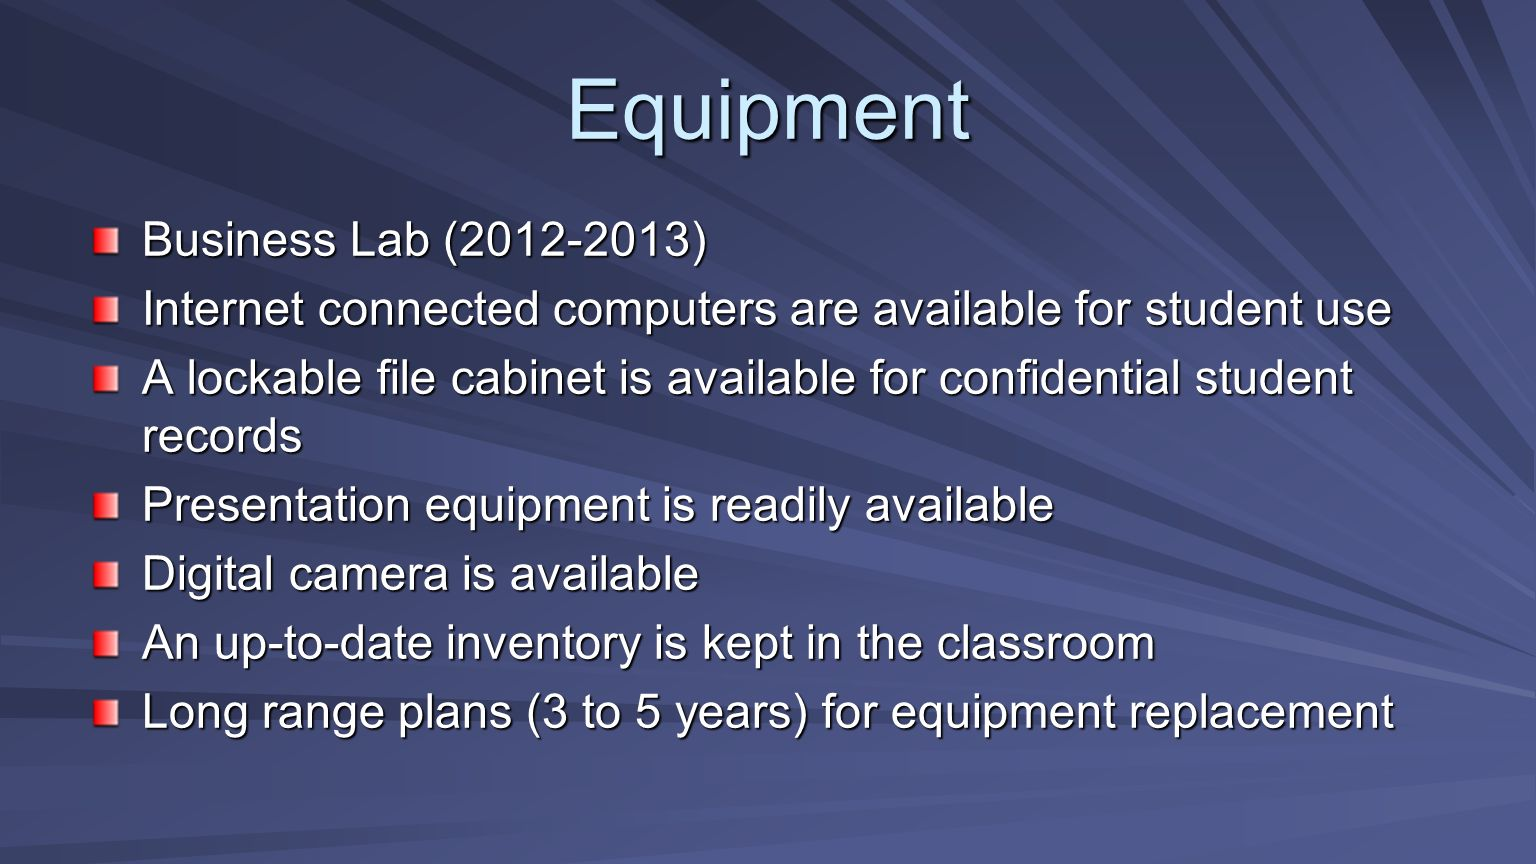 Equipment Business Lab (2012-2013) Internet connected computers are available for student use A lockable file cabinet is available for confidential student records Presentation equipment is readily available Digital camera is available An up-to-date inventory is kept in the classroom Long range plans (3 to 5 years) for equipment replacement